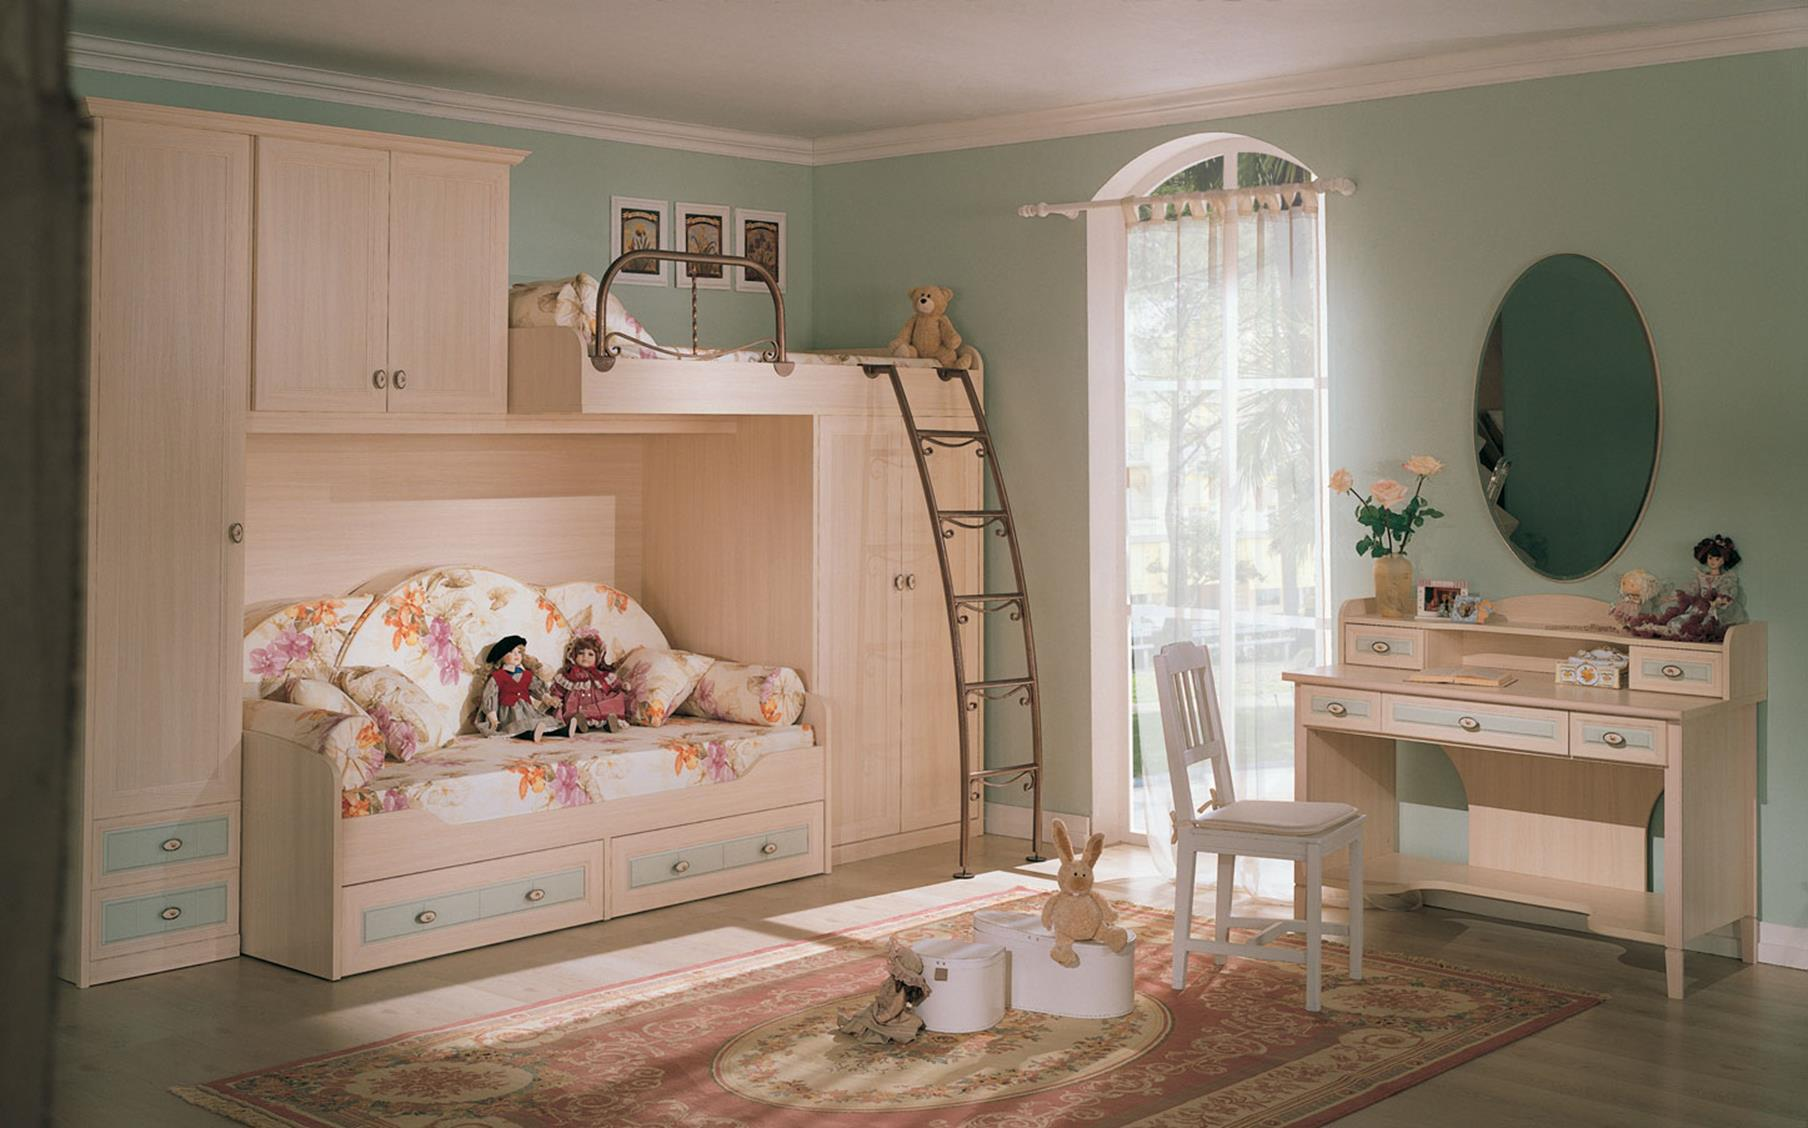 Color Full Kids Room Decorating Ideas On A Budget 28